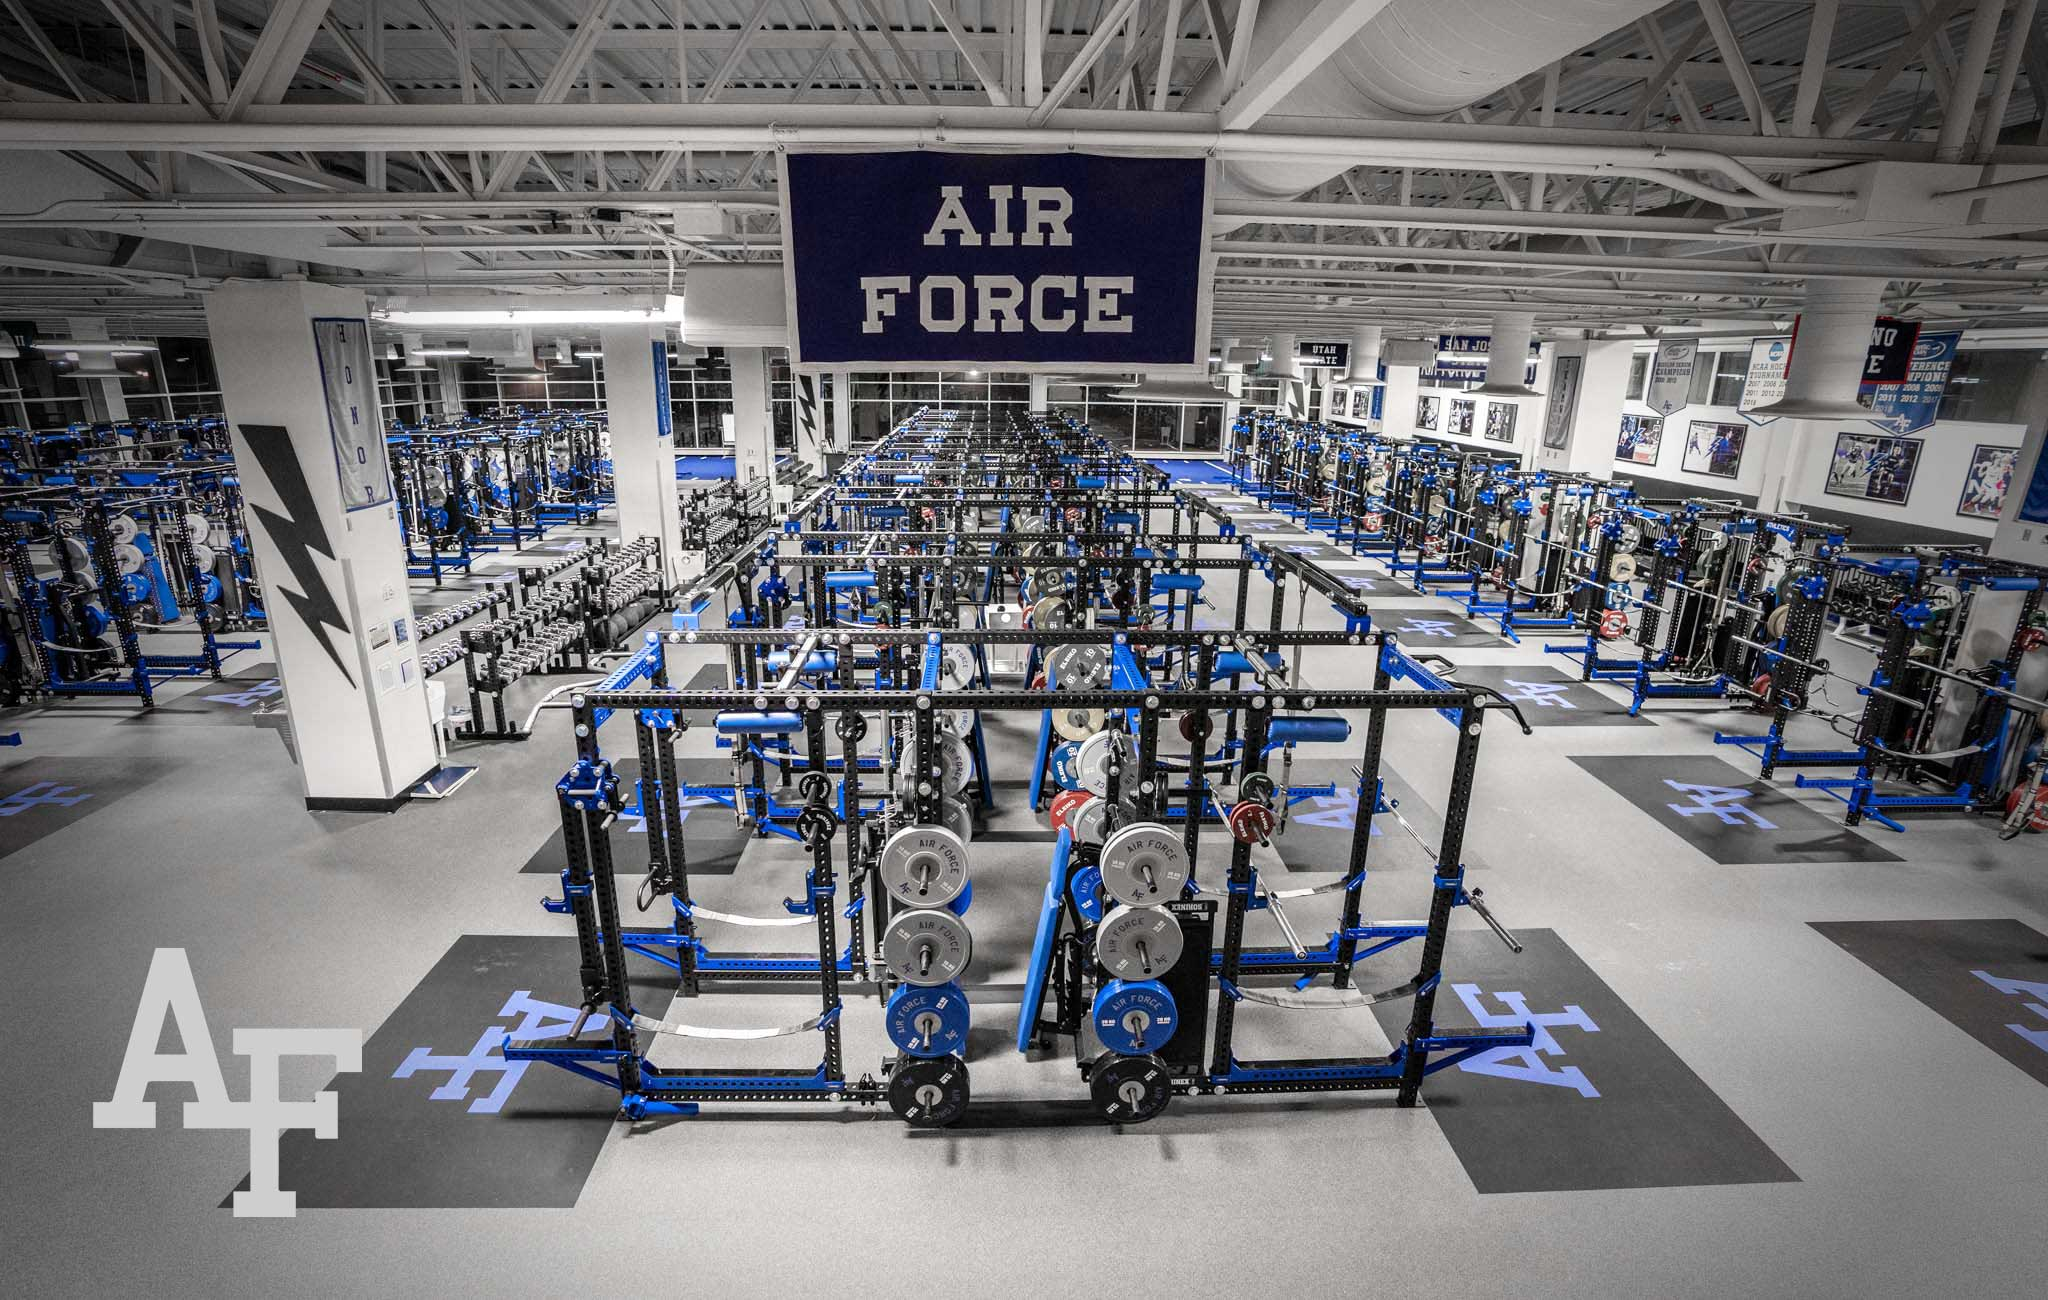 Air force academy Sorinex strength and conditioning facility